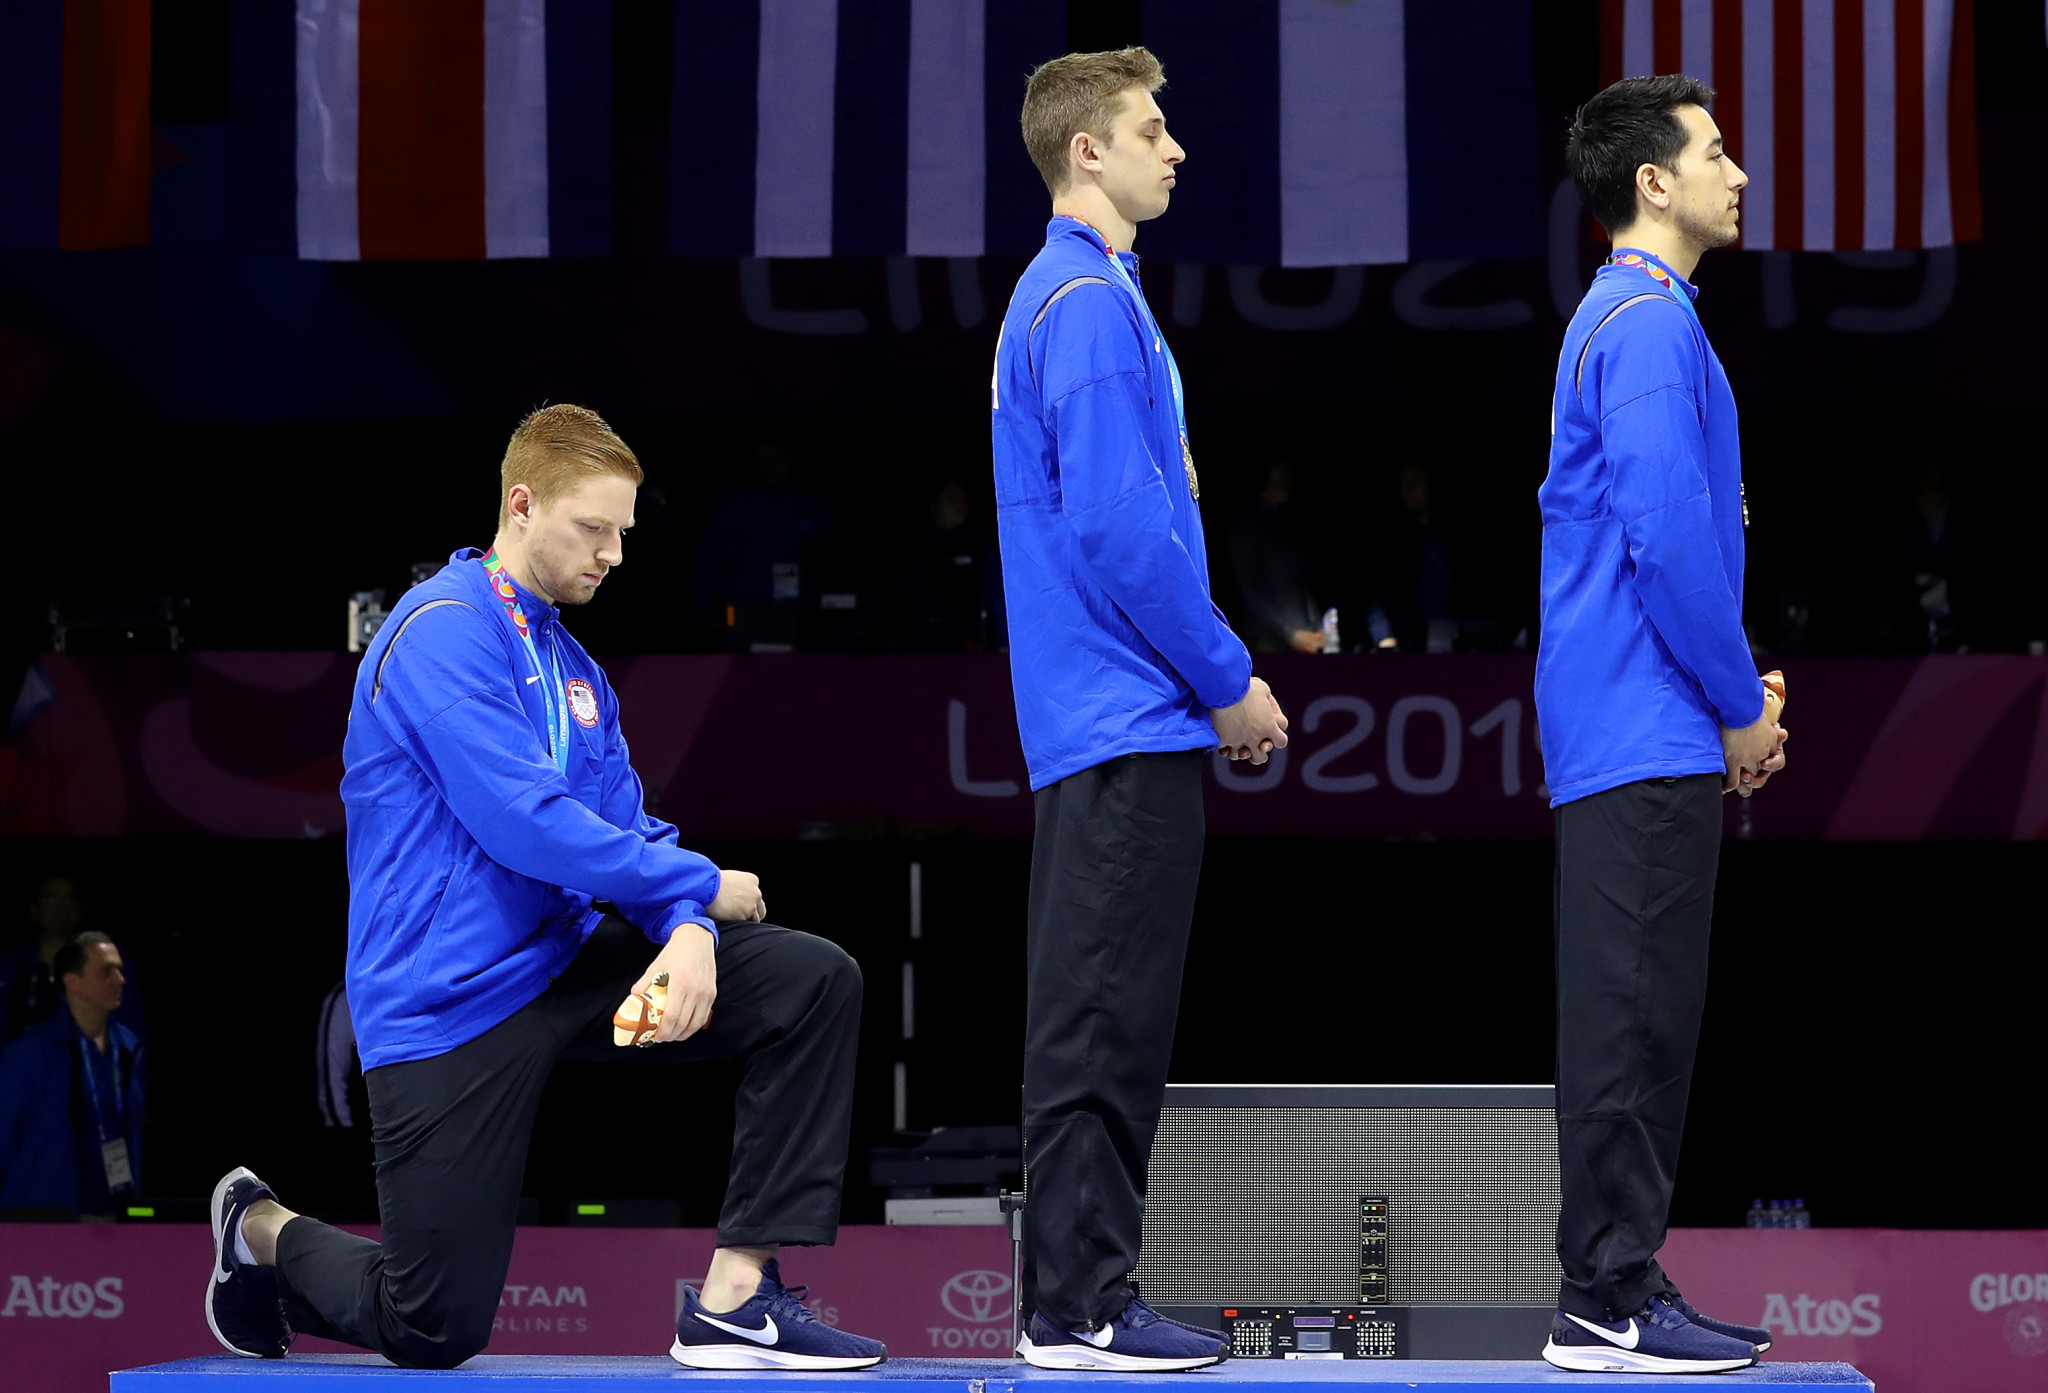 Race Imboden took a knee during the men's team foil medal ceremony ©Getty Images